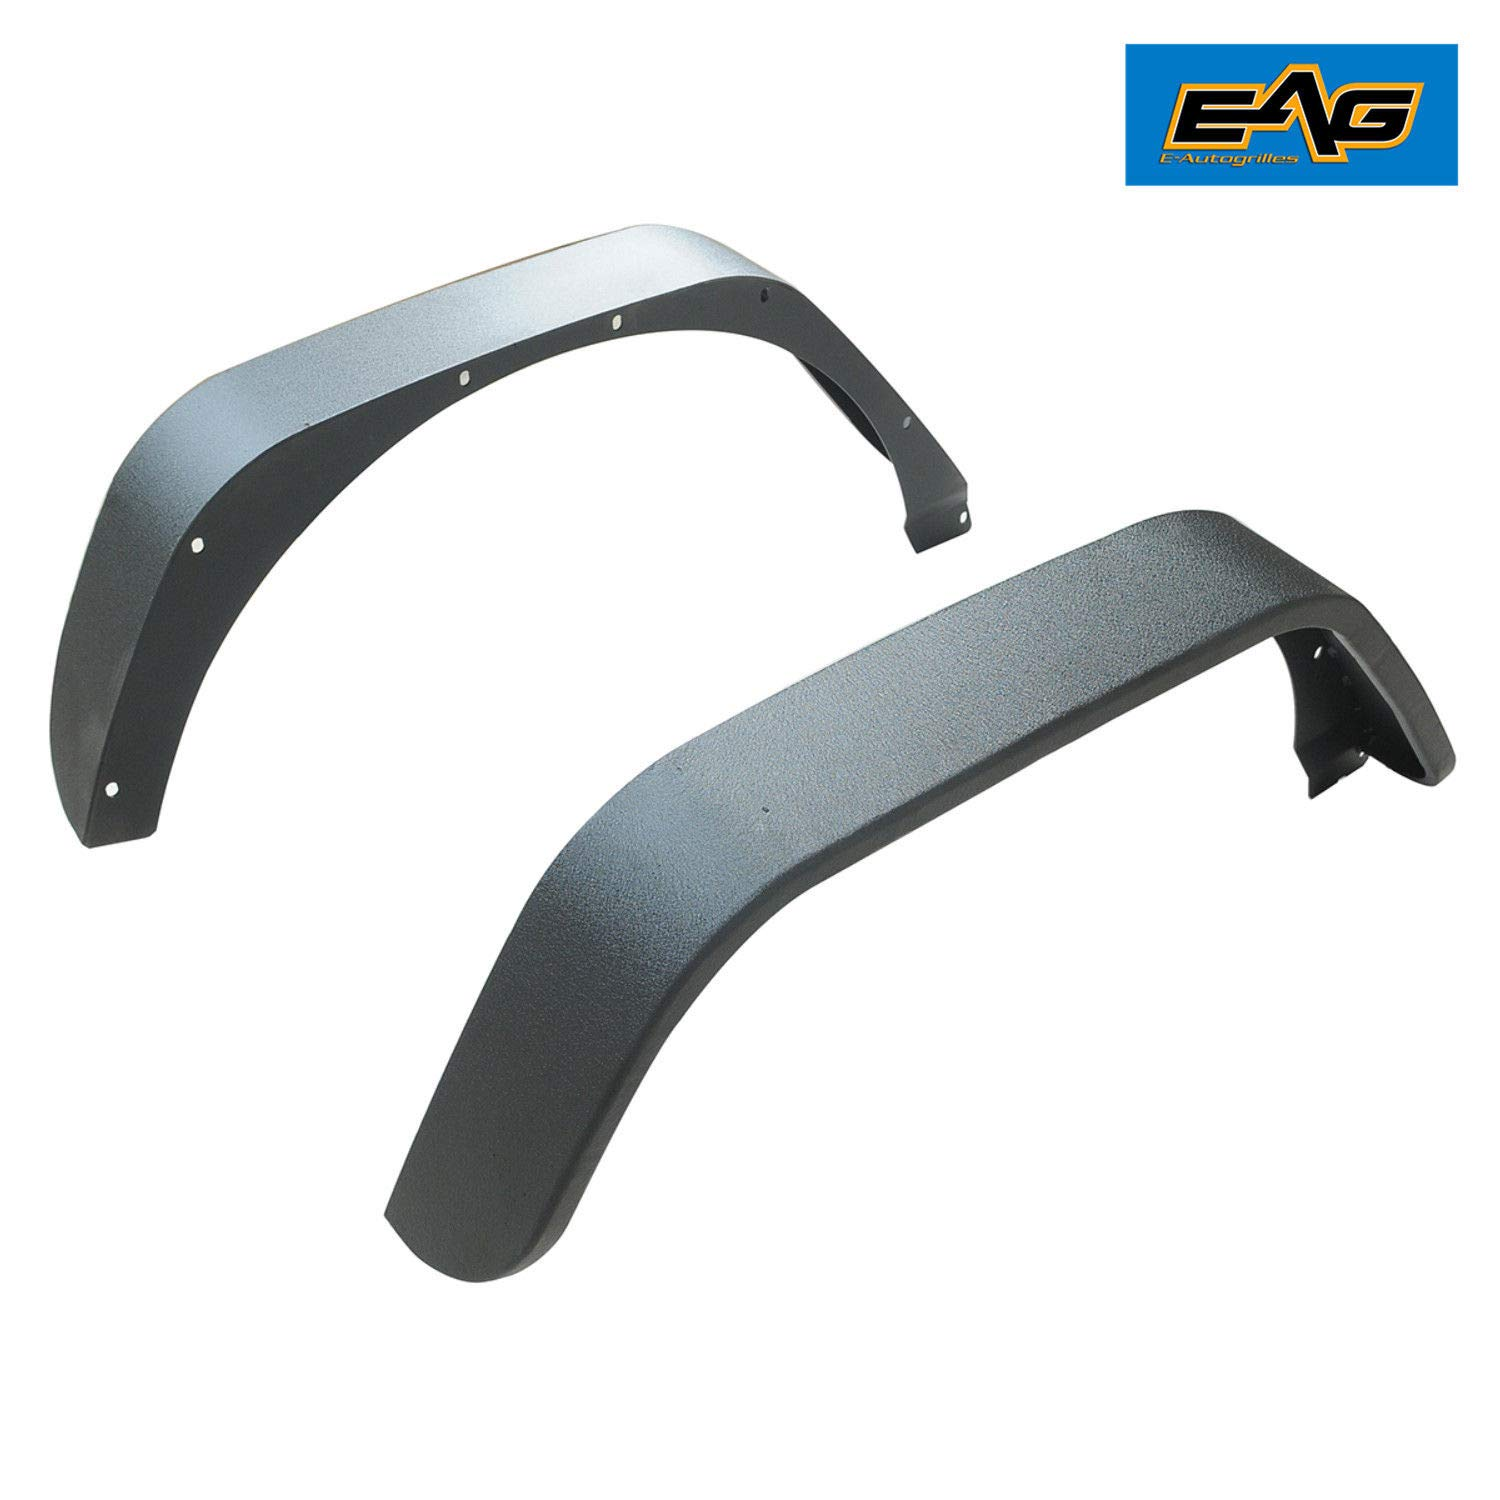 Steel EAG JL Rear Fender Flares for 18-19 Jeep Wrangler JL